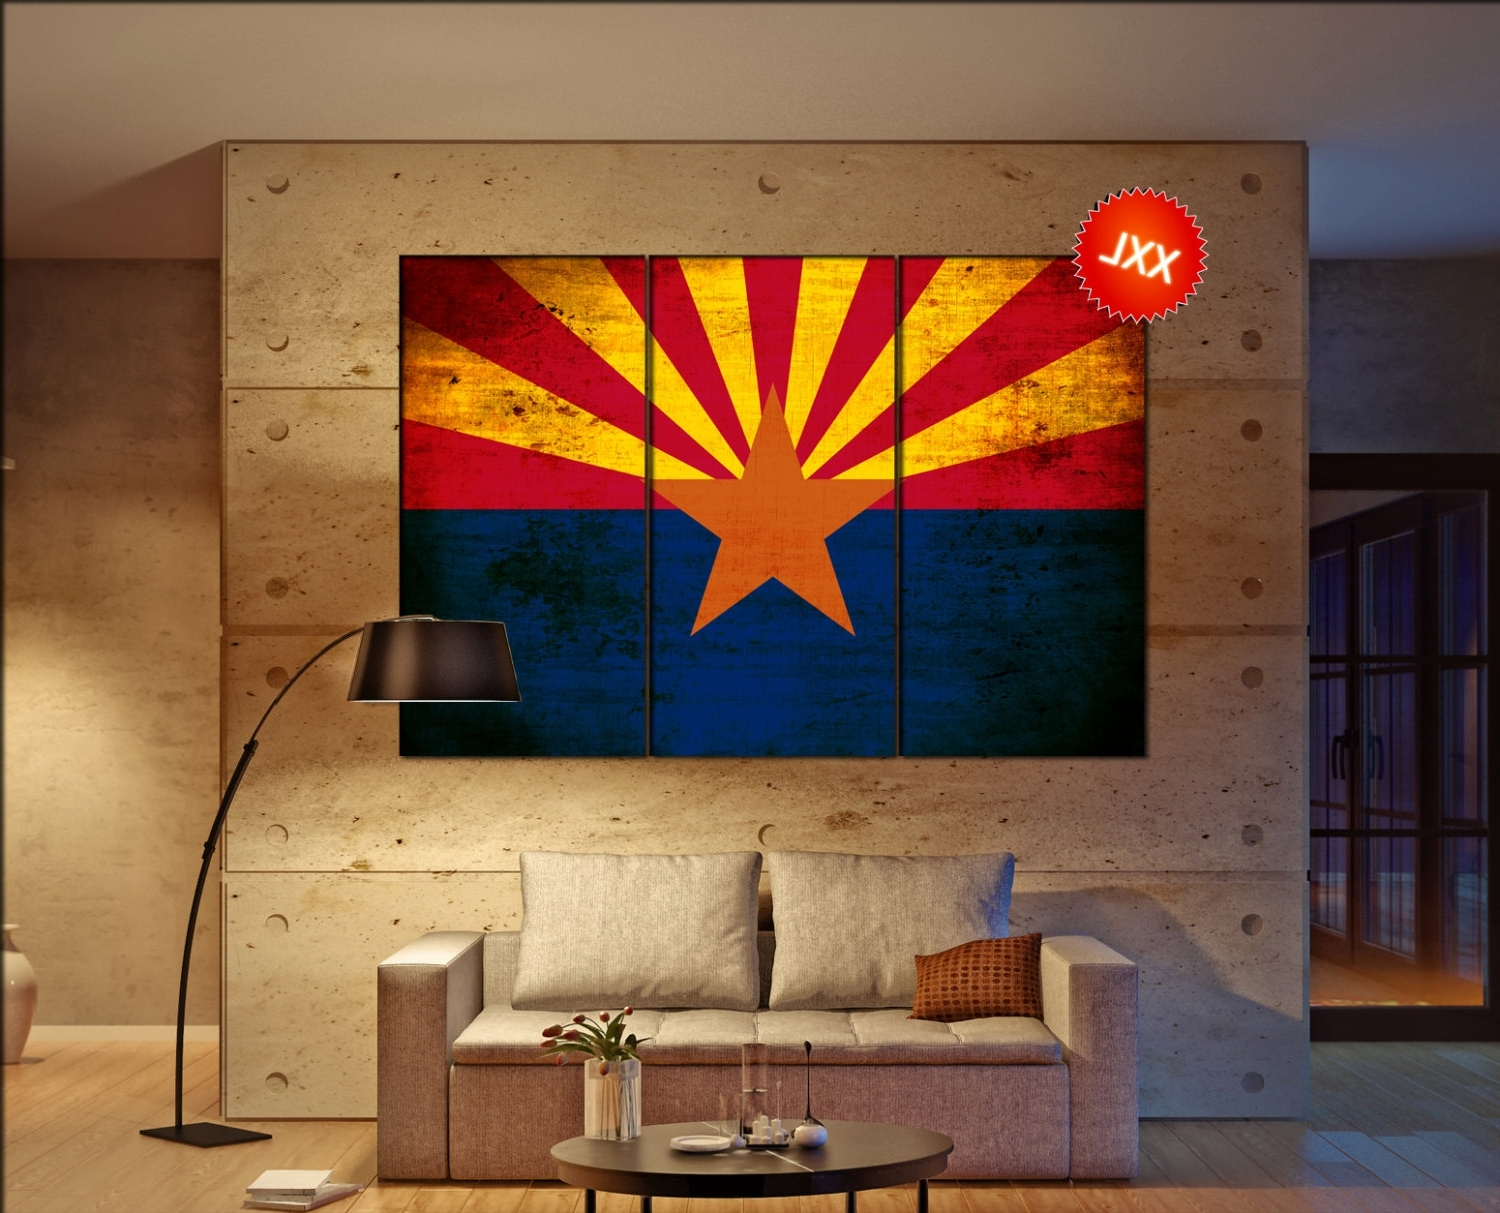 Recent 41 Arizona Wall Art, Best Phoenix Wall Art Products On Wanelo For Arizona Wall Art (View 17 of 20)